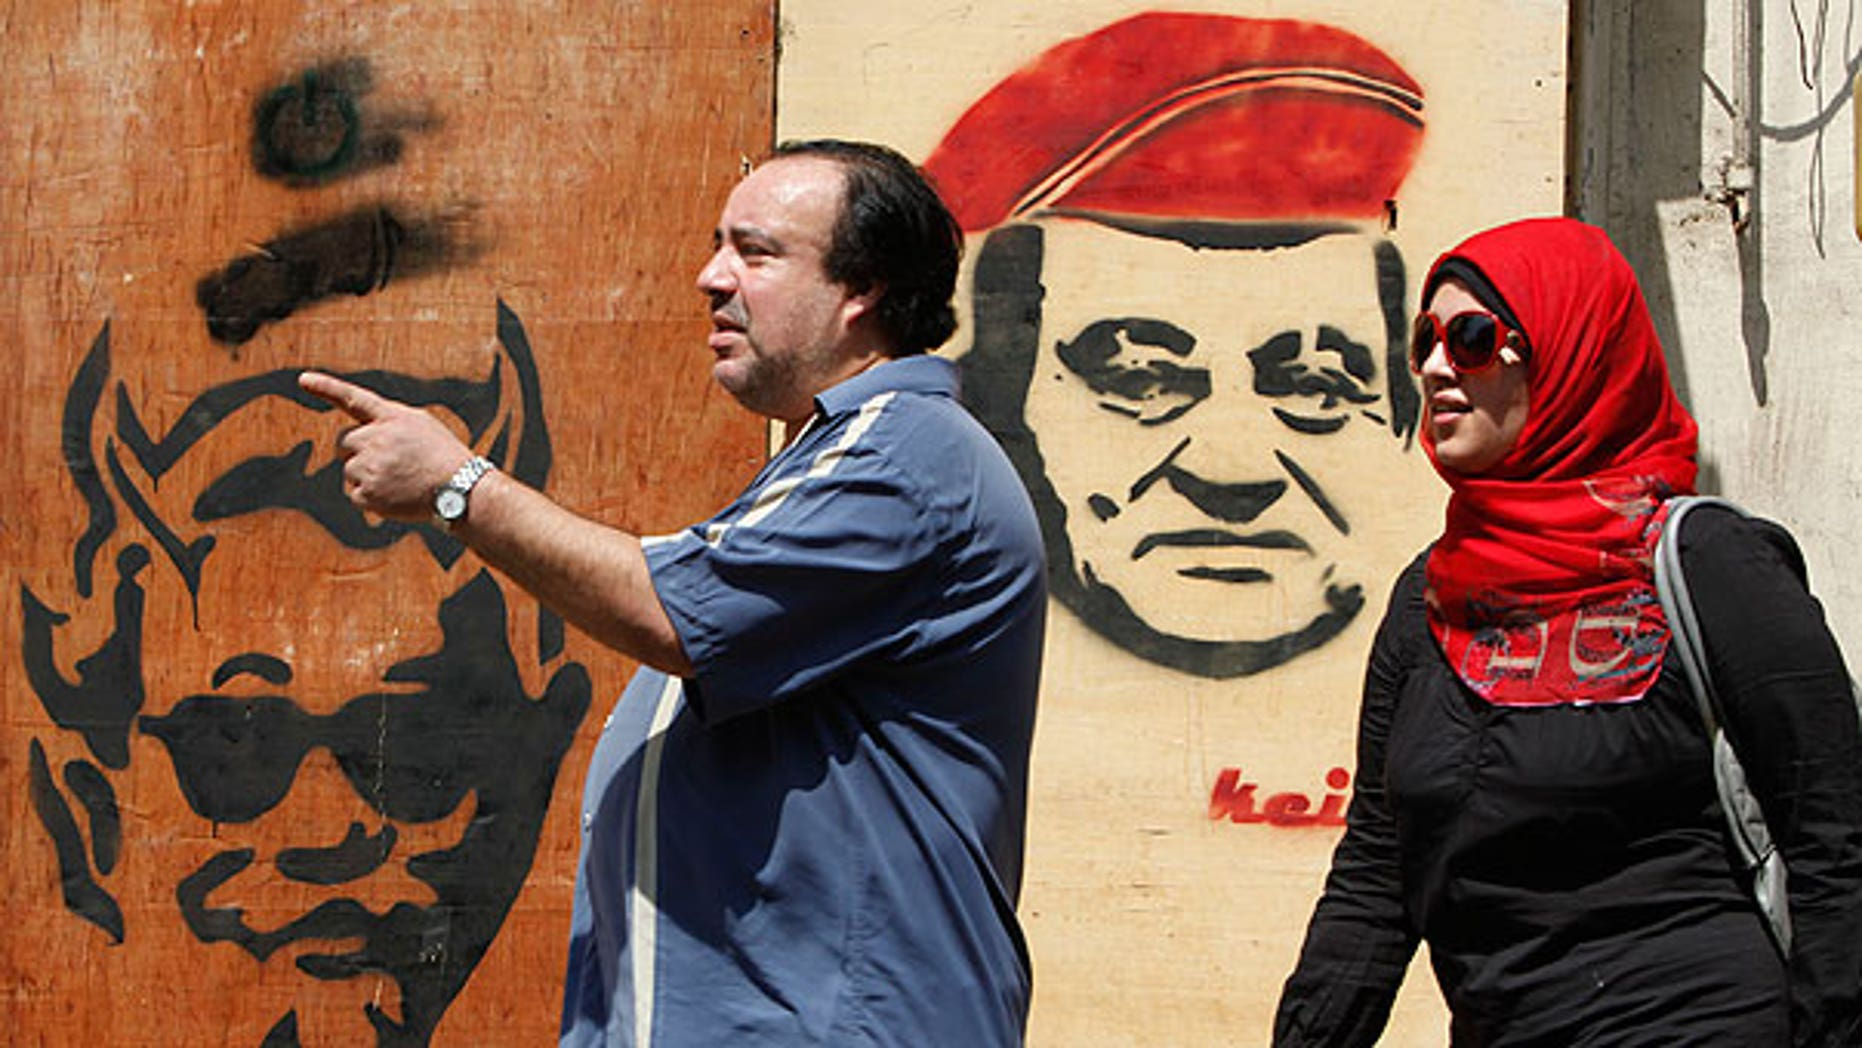 Sept. 4: Egyptians walk in front of an anti- ousted Egyptian President Hosni Mubarak graffiti in Cairo, Egypt, a day before the third trial session of him, his two sons, his former security chief and six other senior officials on charges of conspiring to kill protesters during mass uprising that ousted them from power.